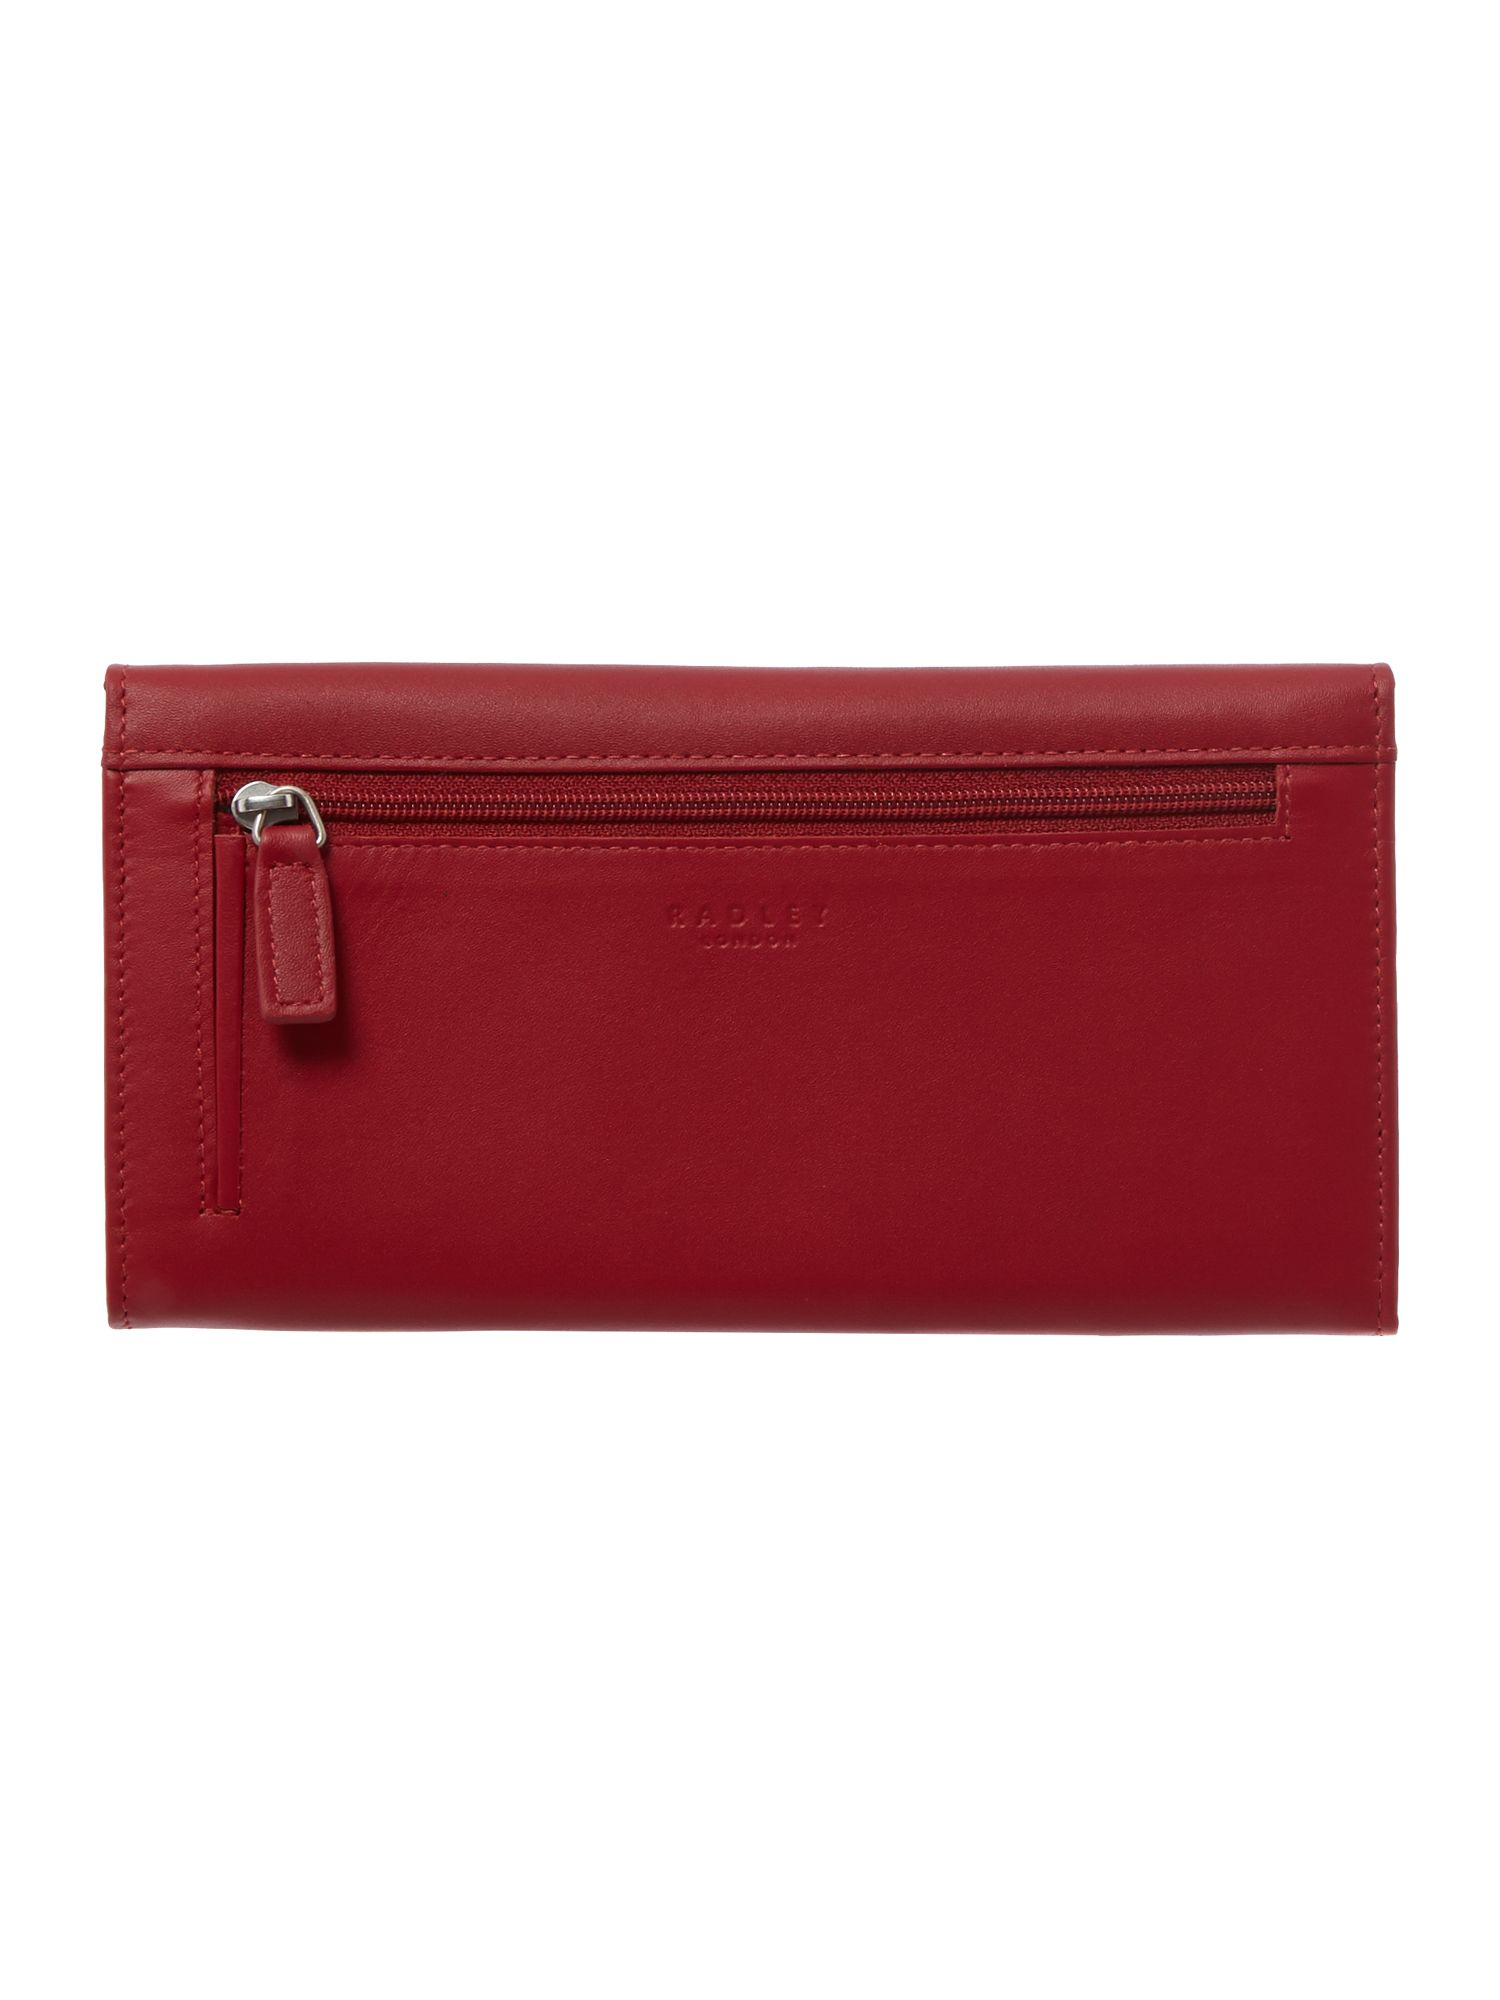 Heritage dog red large flap over purse